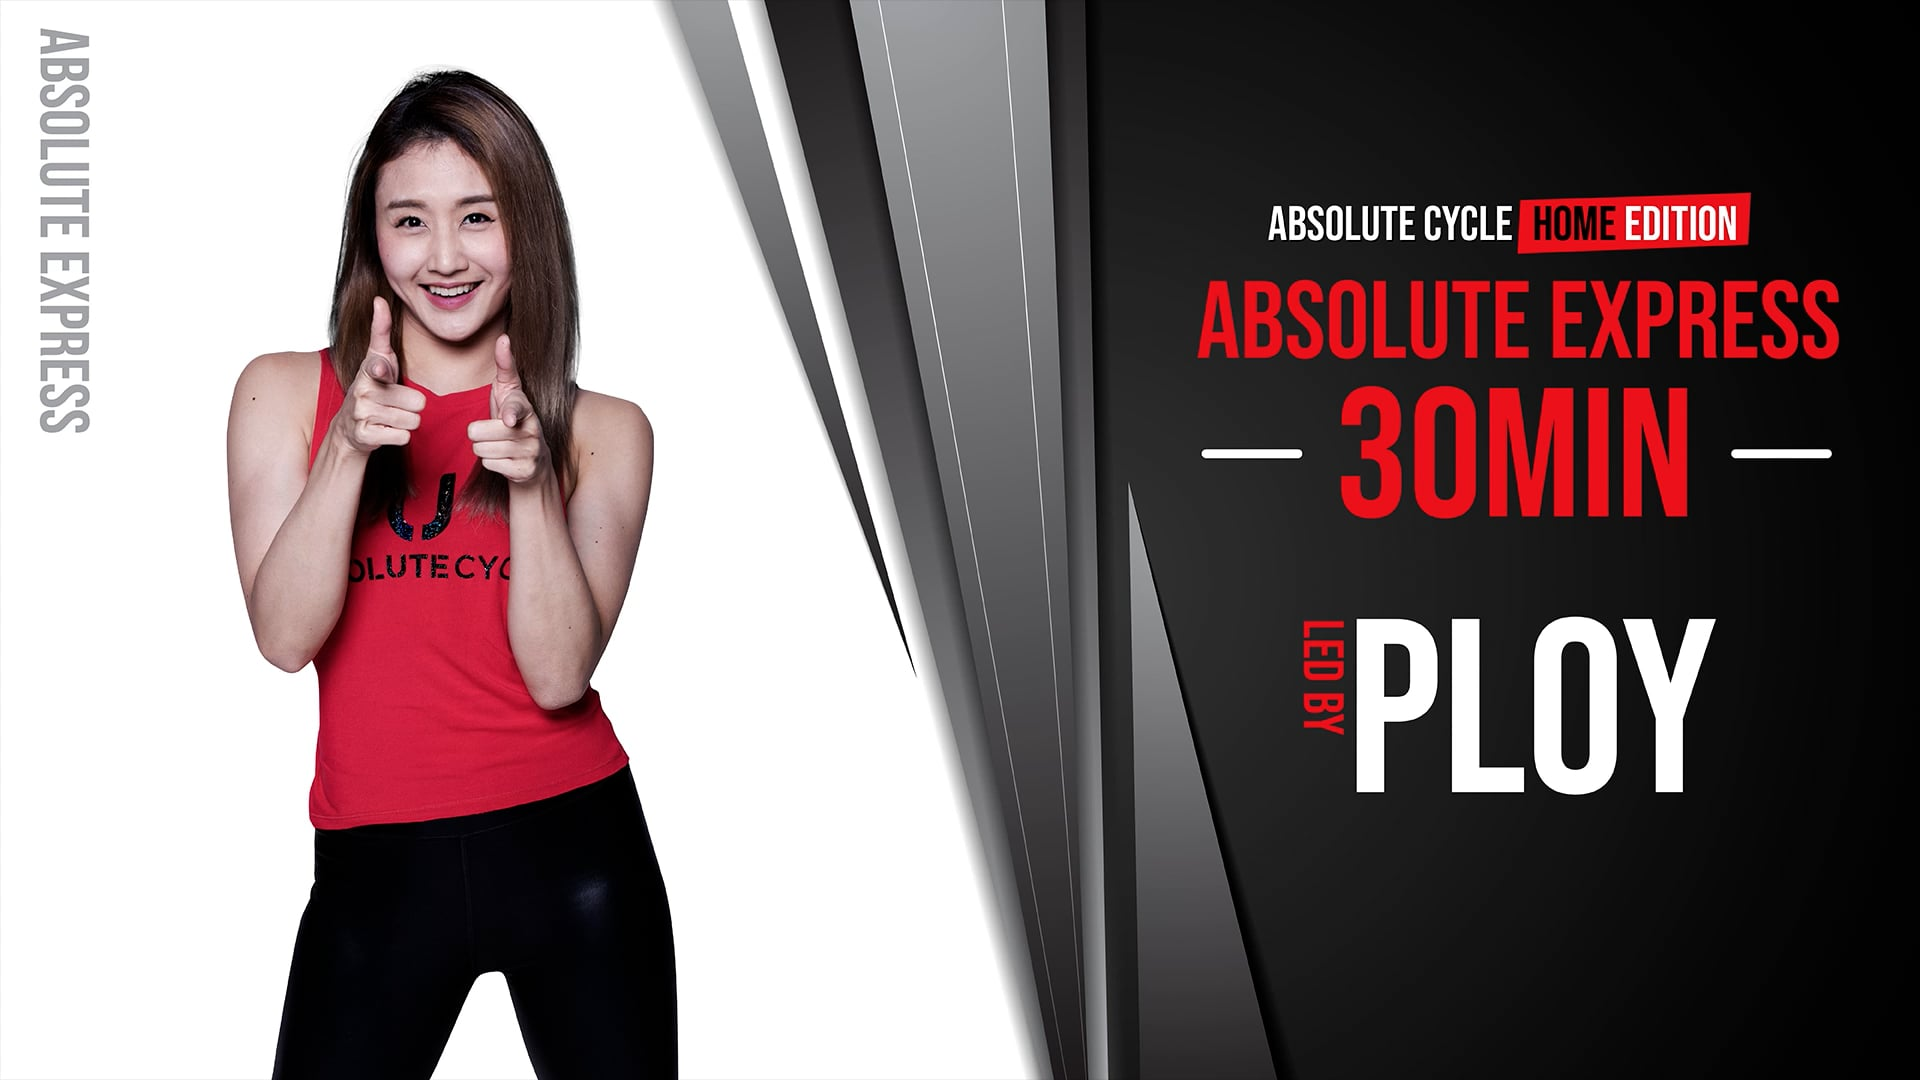 PLOY - ABSOLUTE EXPRESS 30 (11 OCTOBE...